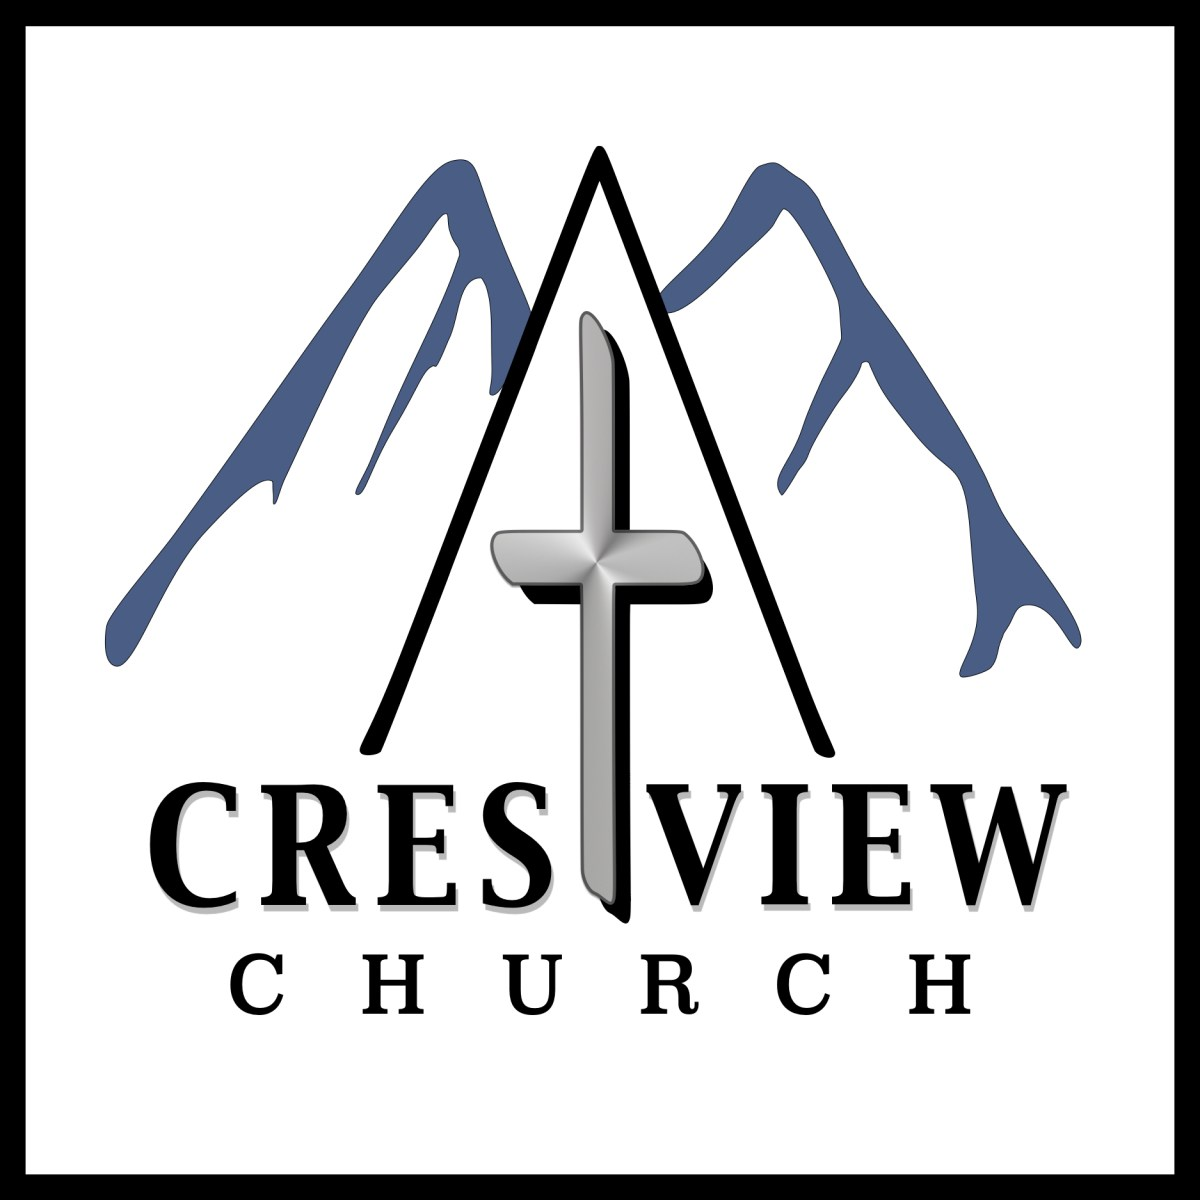 Crestview Church square logo with cross and mountains.